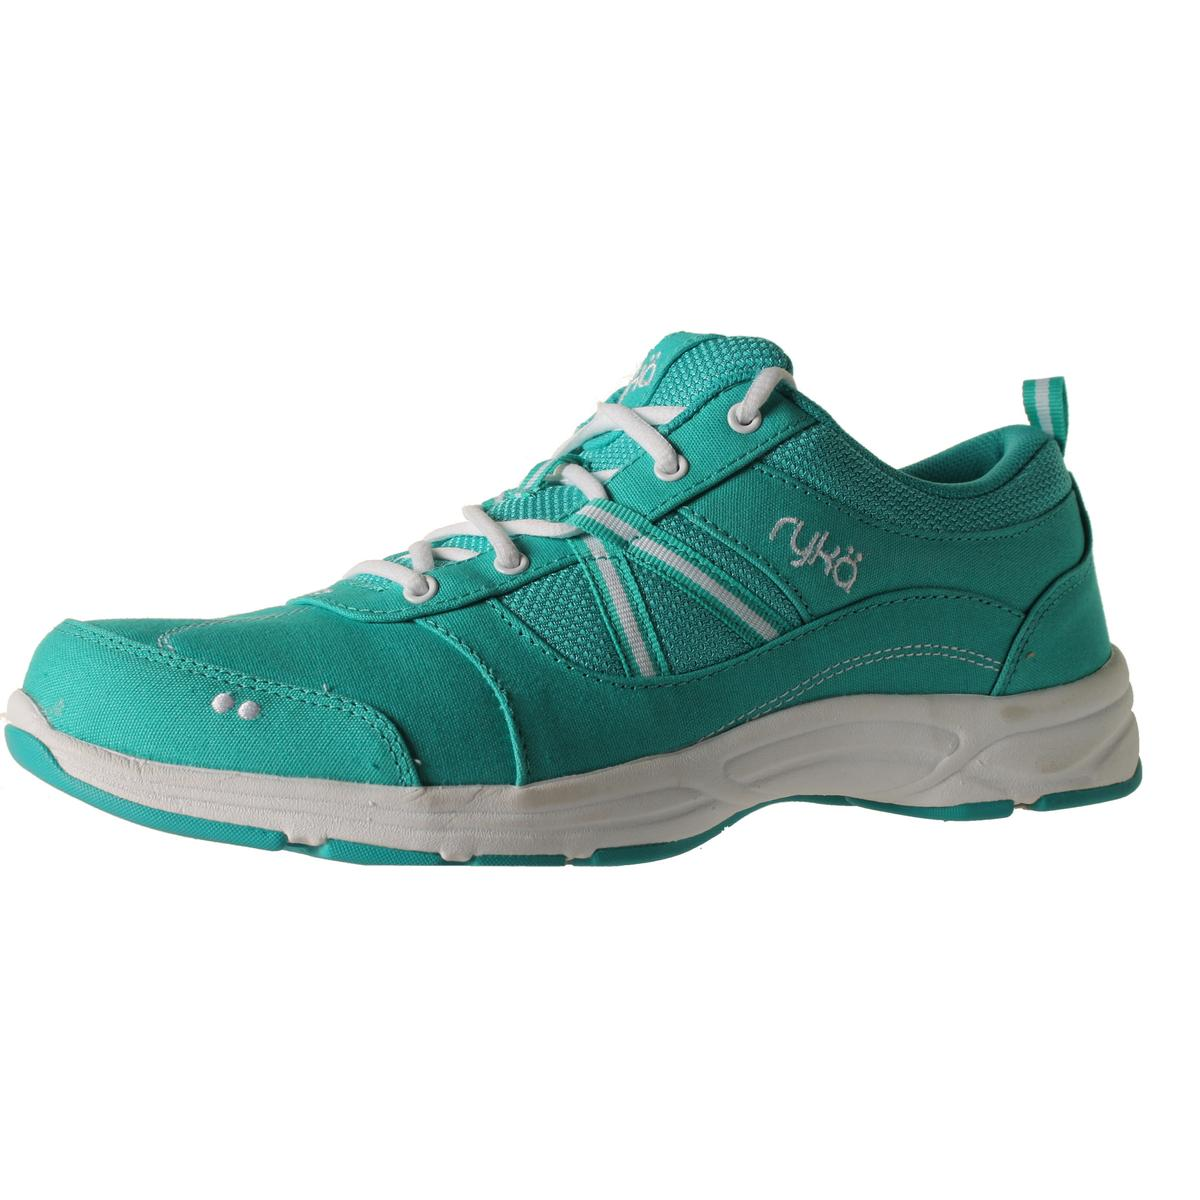 Ryka Womens Tempo Canvas Lace-Up Sneakers